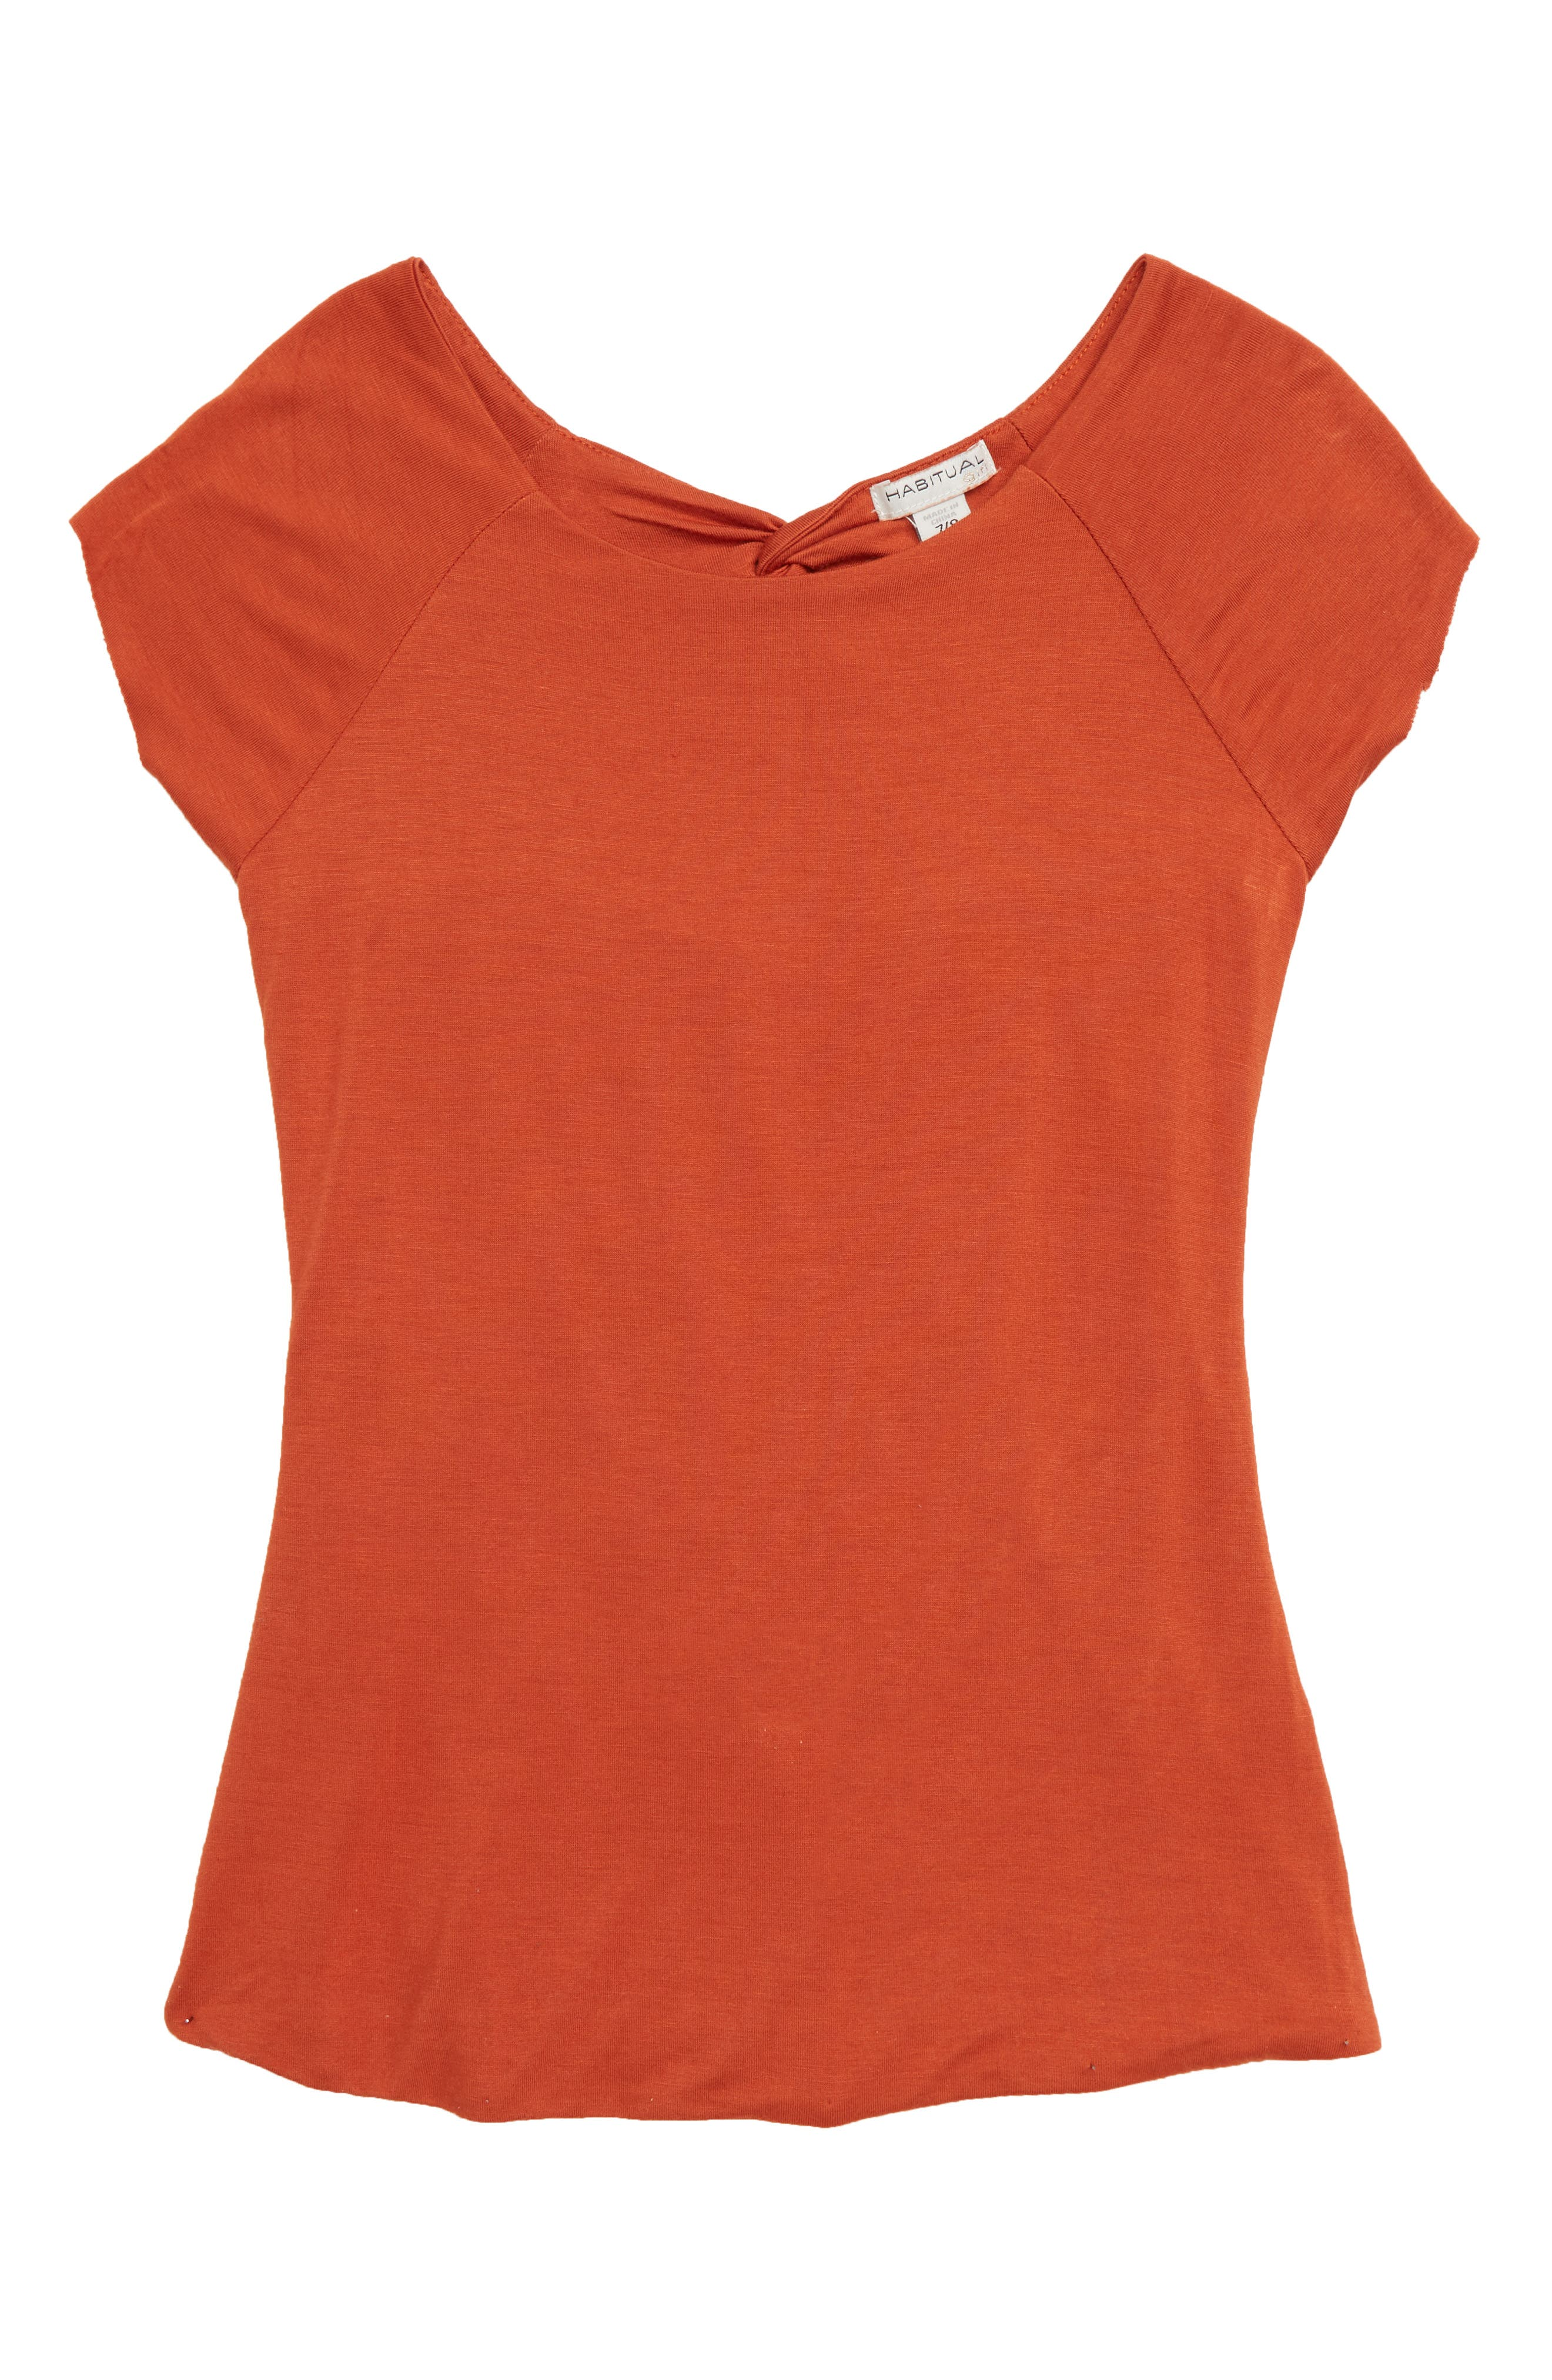 Girls Habitual Gianna Crossback Top Size 12  Orange